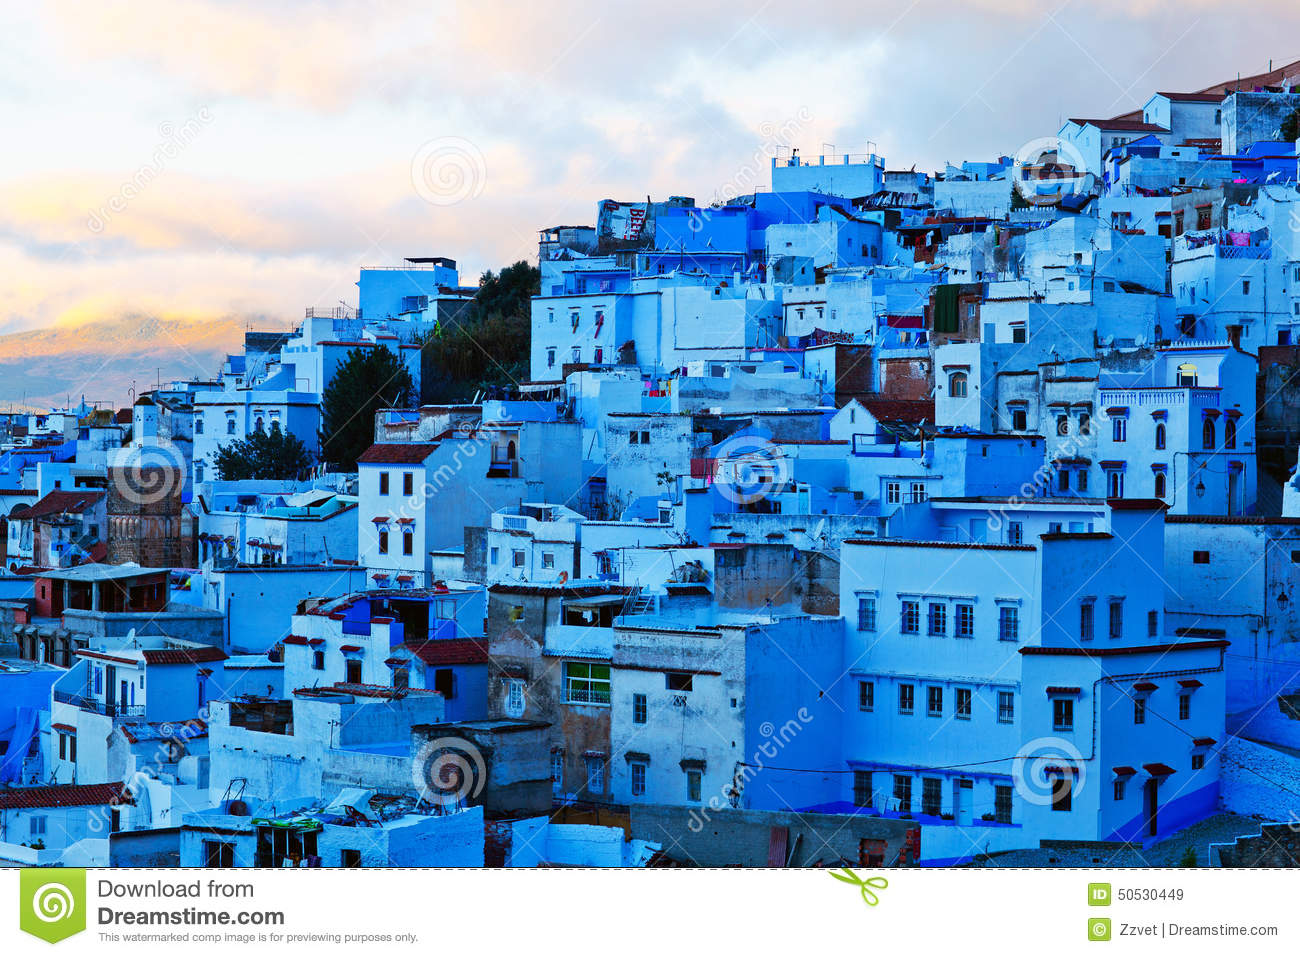 ... of the same name, and is noted for its buildings in shades of blue